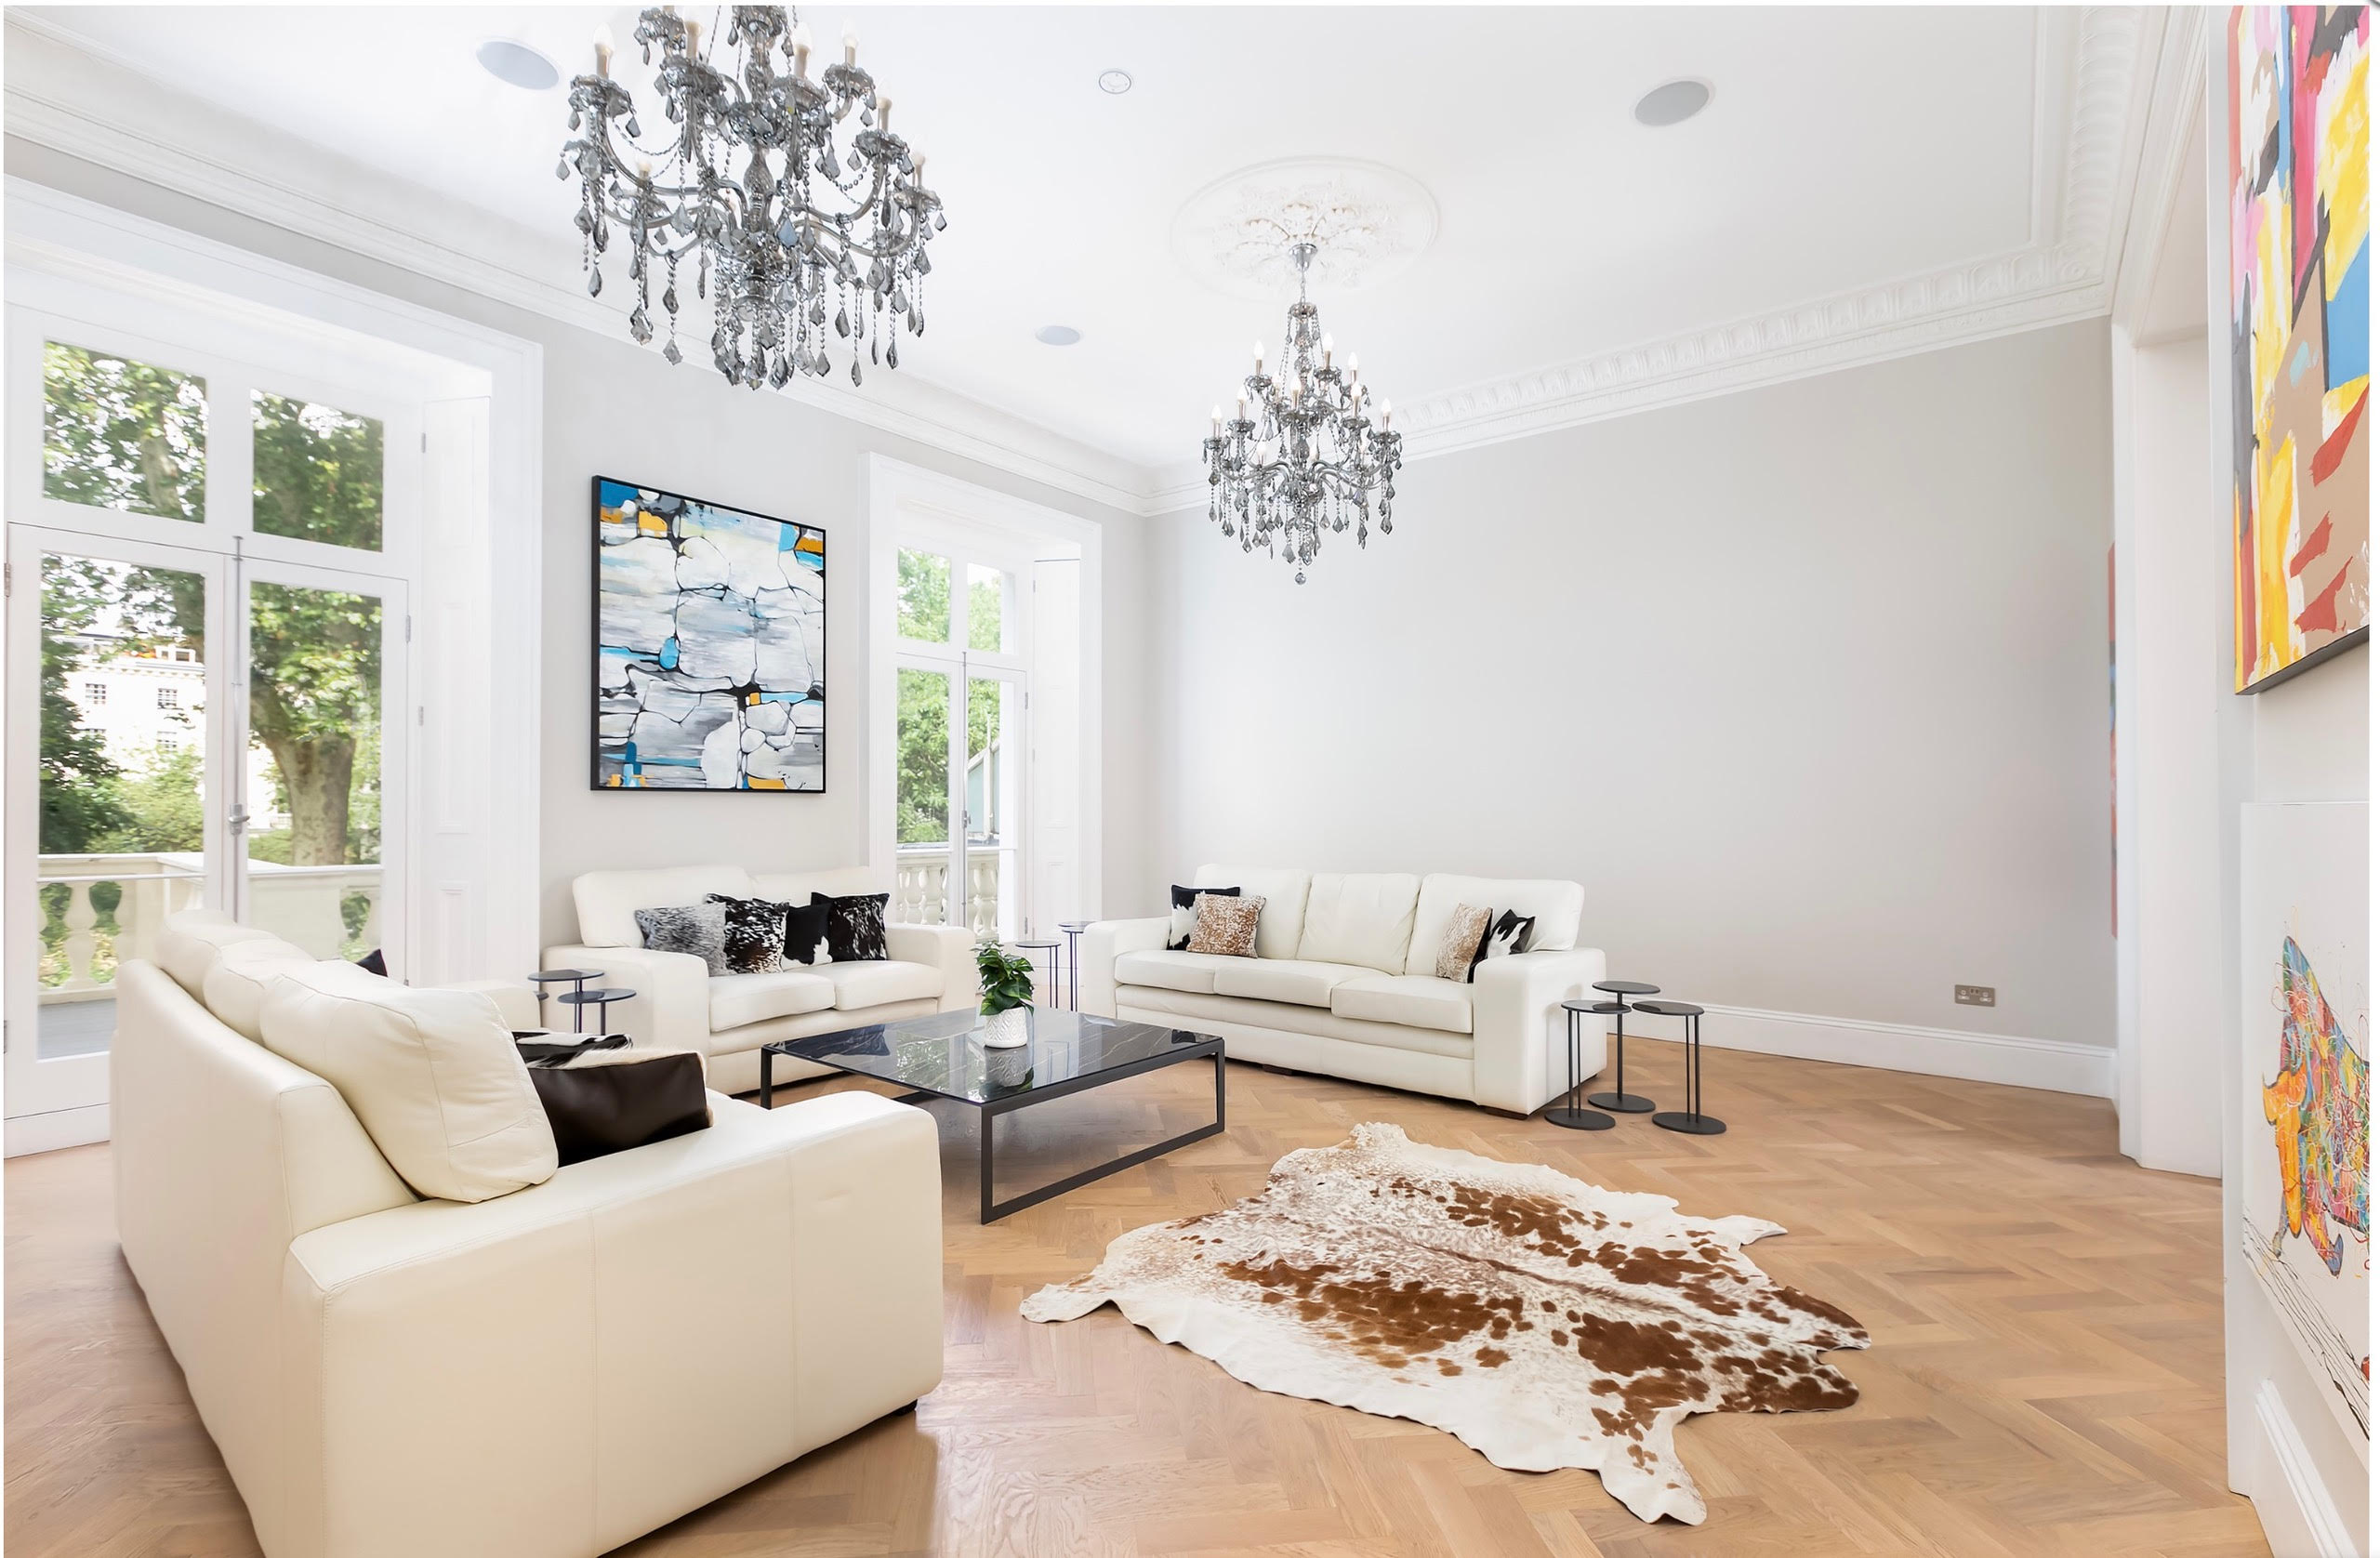 BELGRAVIA ECCLESTON SQUARE LUXURY HOME LONDON